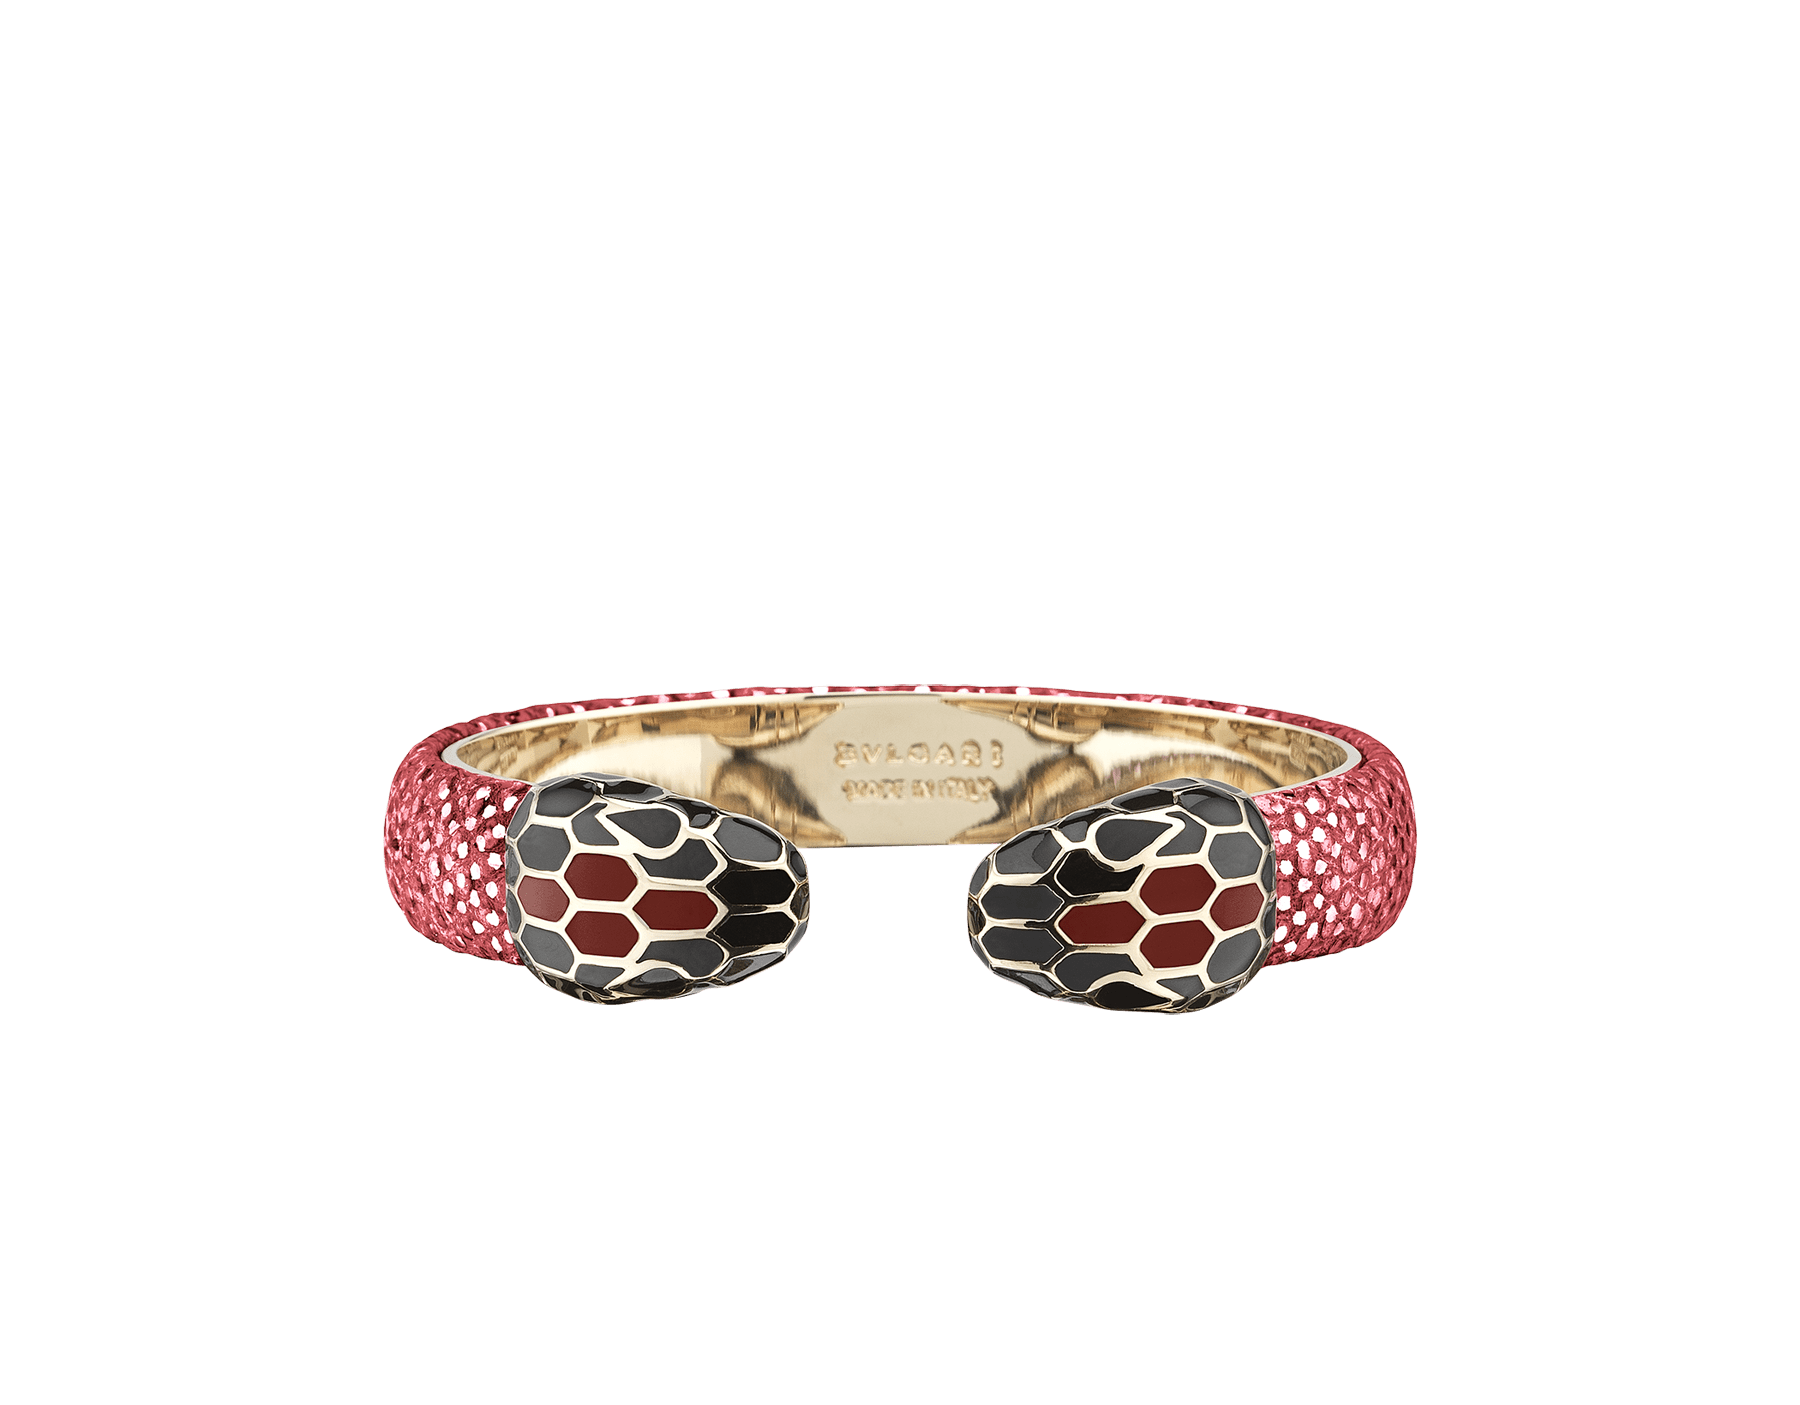 Serpenti Forever bangle bracelet in ruby red metallic karung skin, with brass light gold plated hardware. Iconic contraire snakehead décor in black and white enamel, with green enamel eyes SPContr-MK-RR image 1